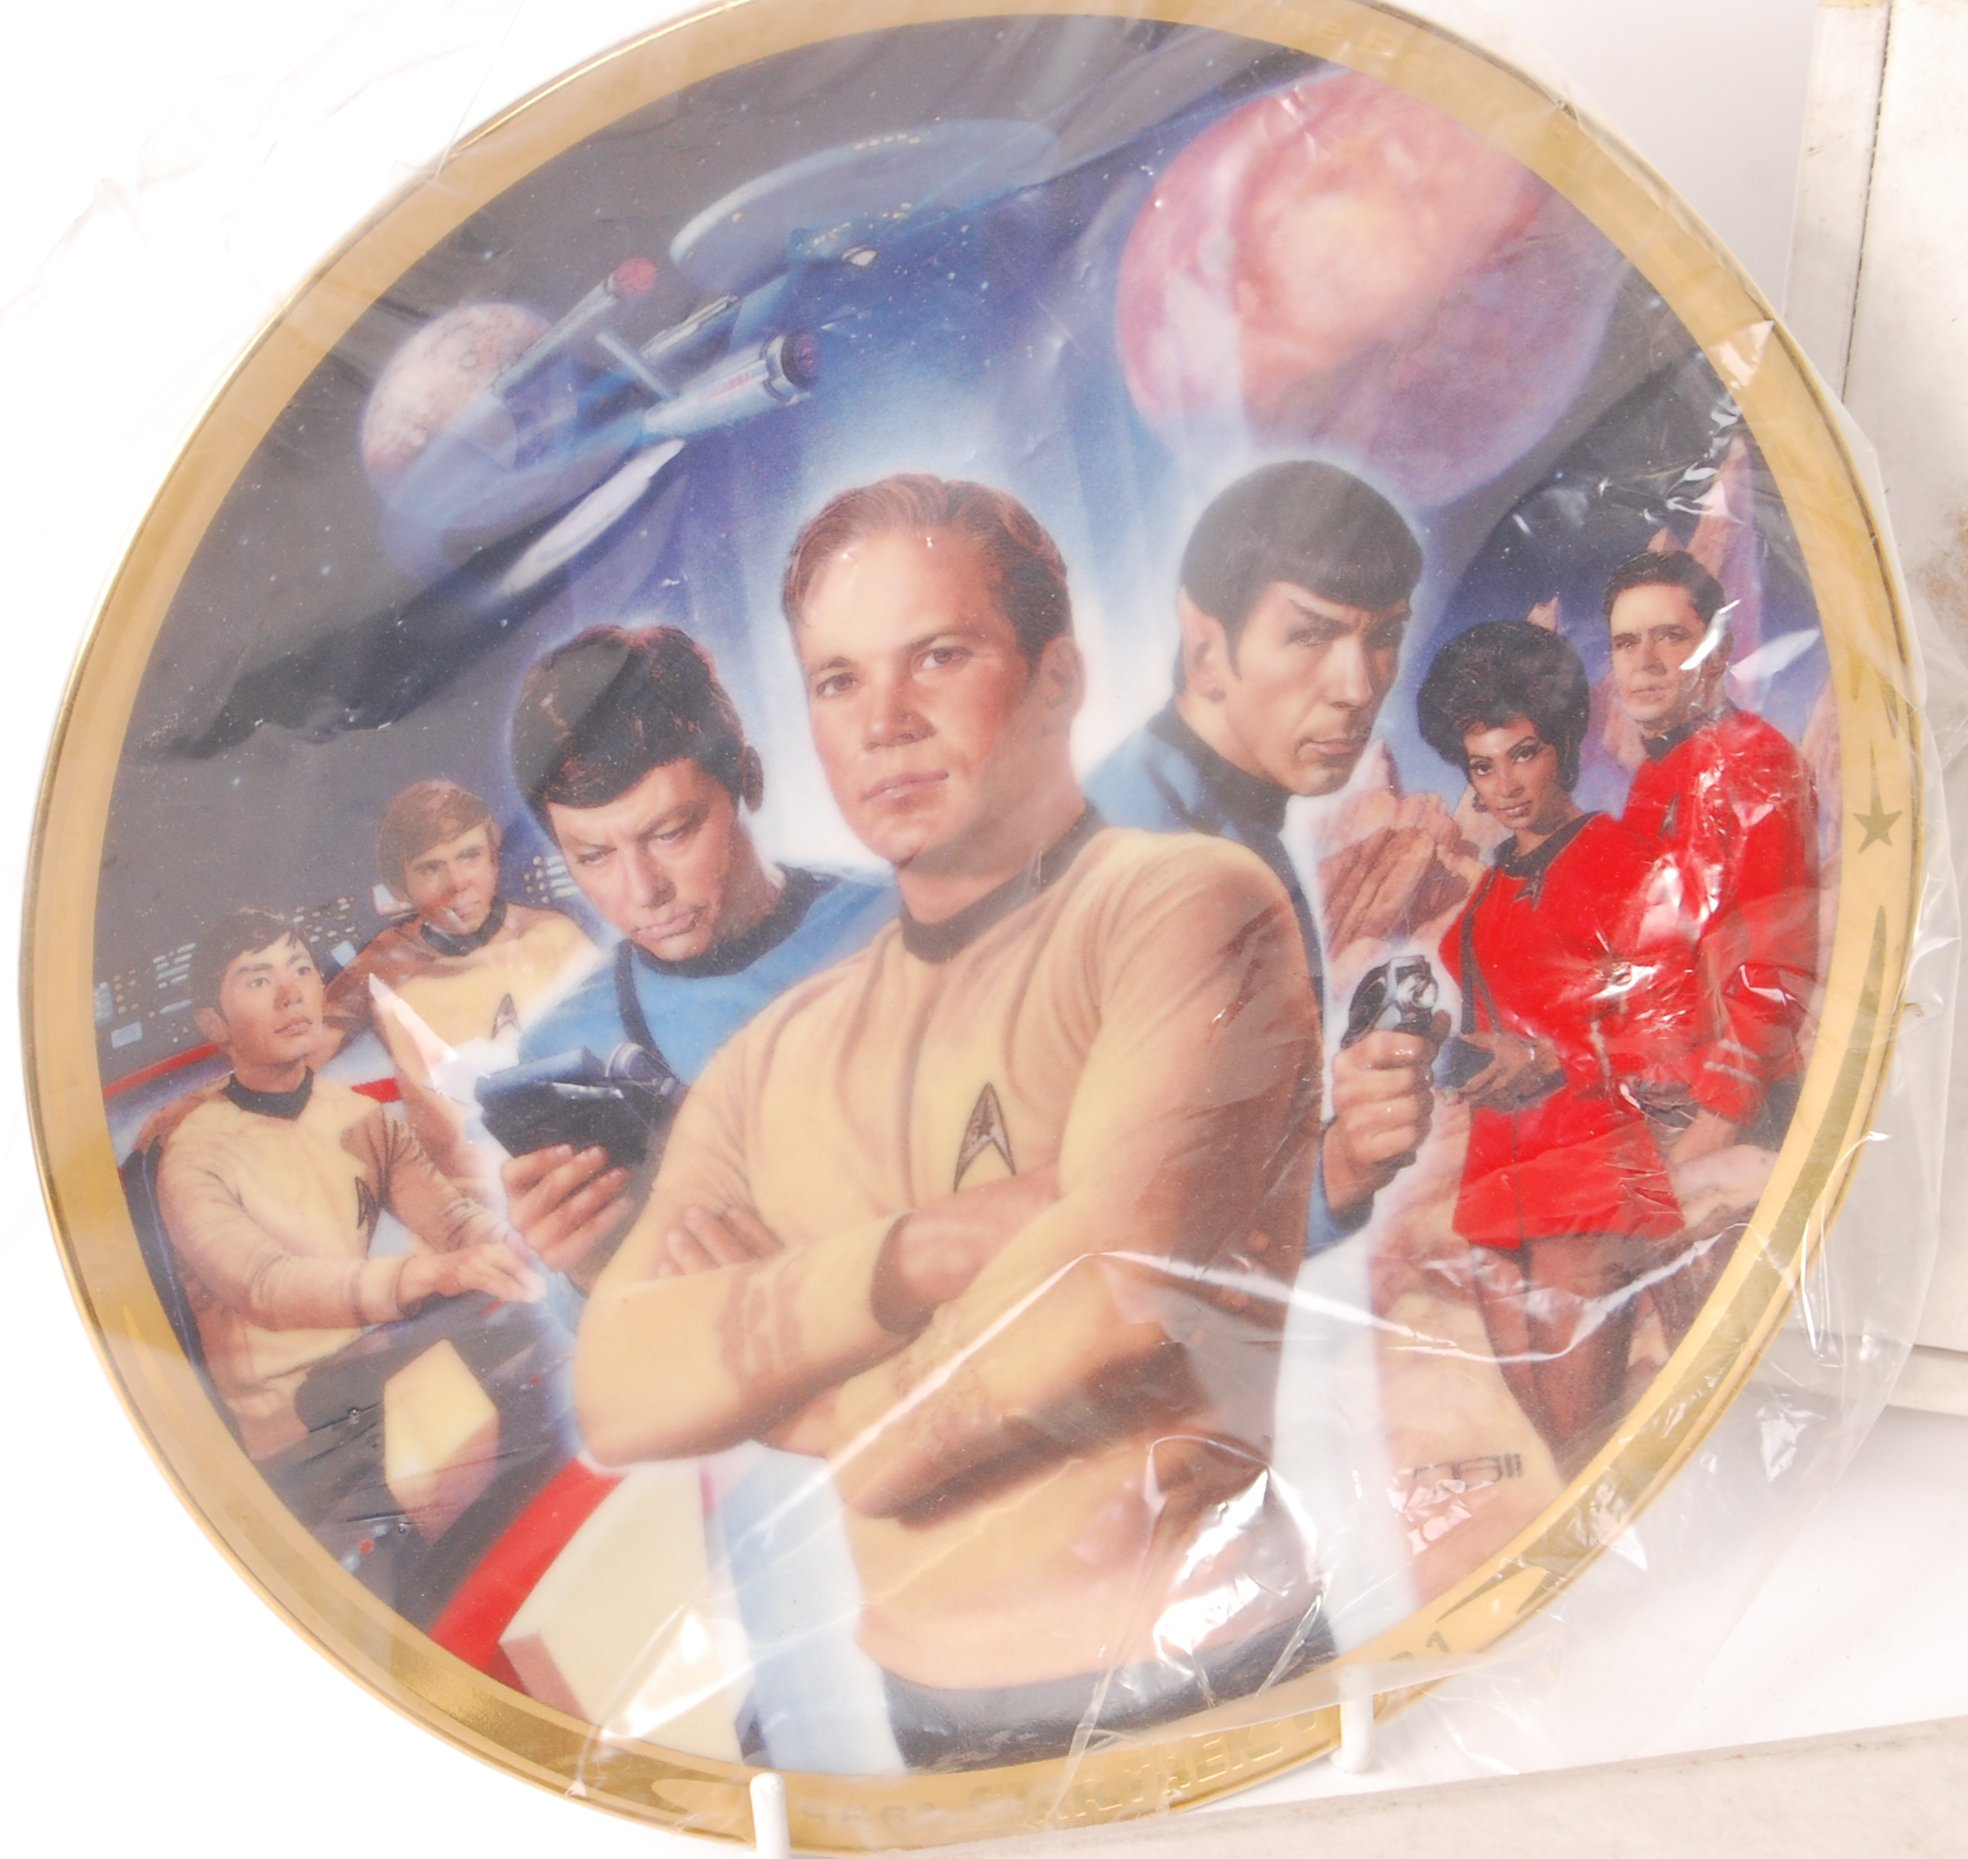 Lot 56 - COLLECTION OF ' HAMILTON COLLECTION ' STAR TREK COLLECTOR'S PLATES